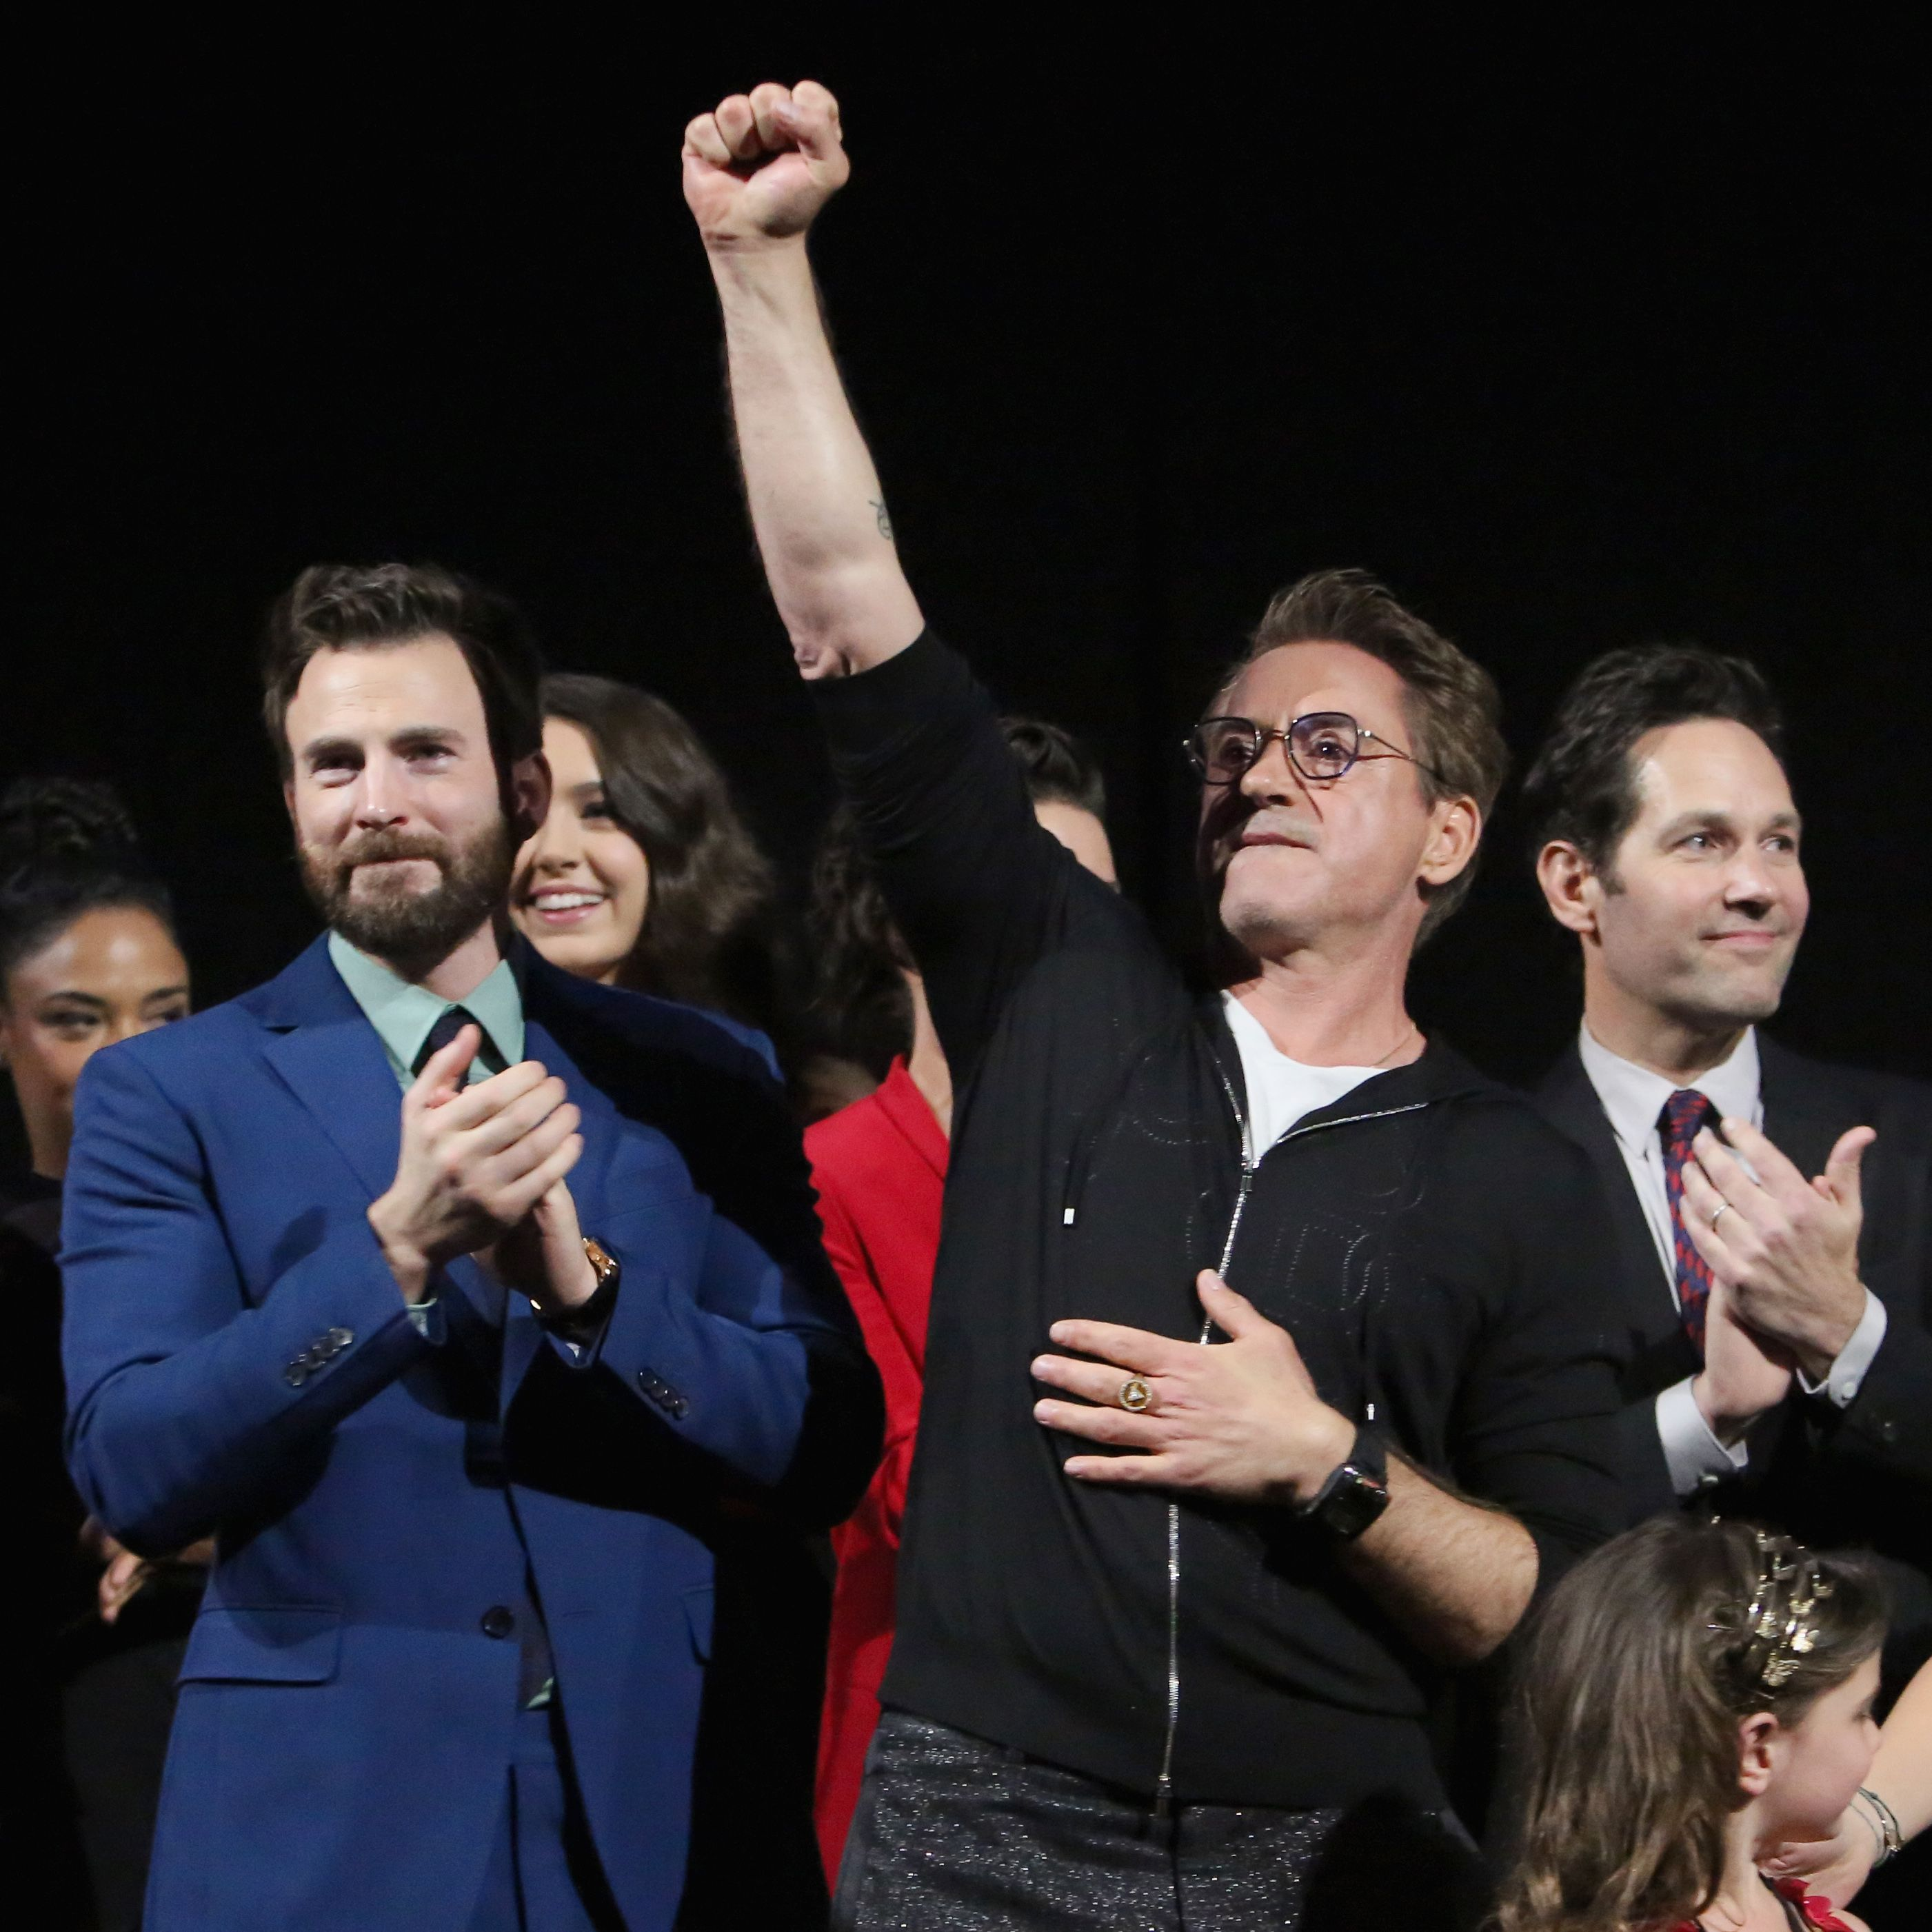 (L-R) Chris Evans and Robert Downey Jr. speak onstage during the Los Angeles World Premiere of Marvel Studios' 'Avengers: Endgame' at the Los Angeles Convention Center on April 23, 2019 in Los Angeles, California.